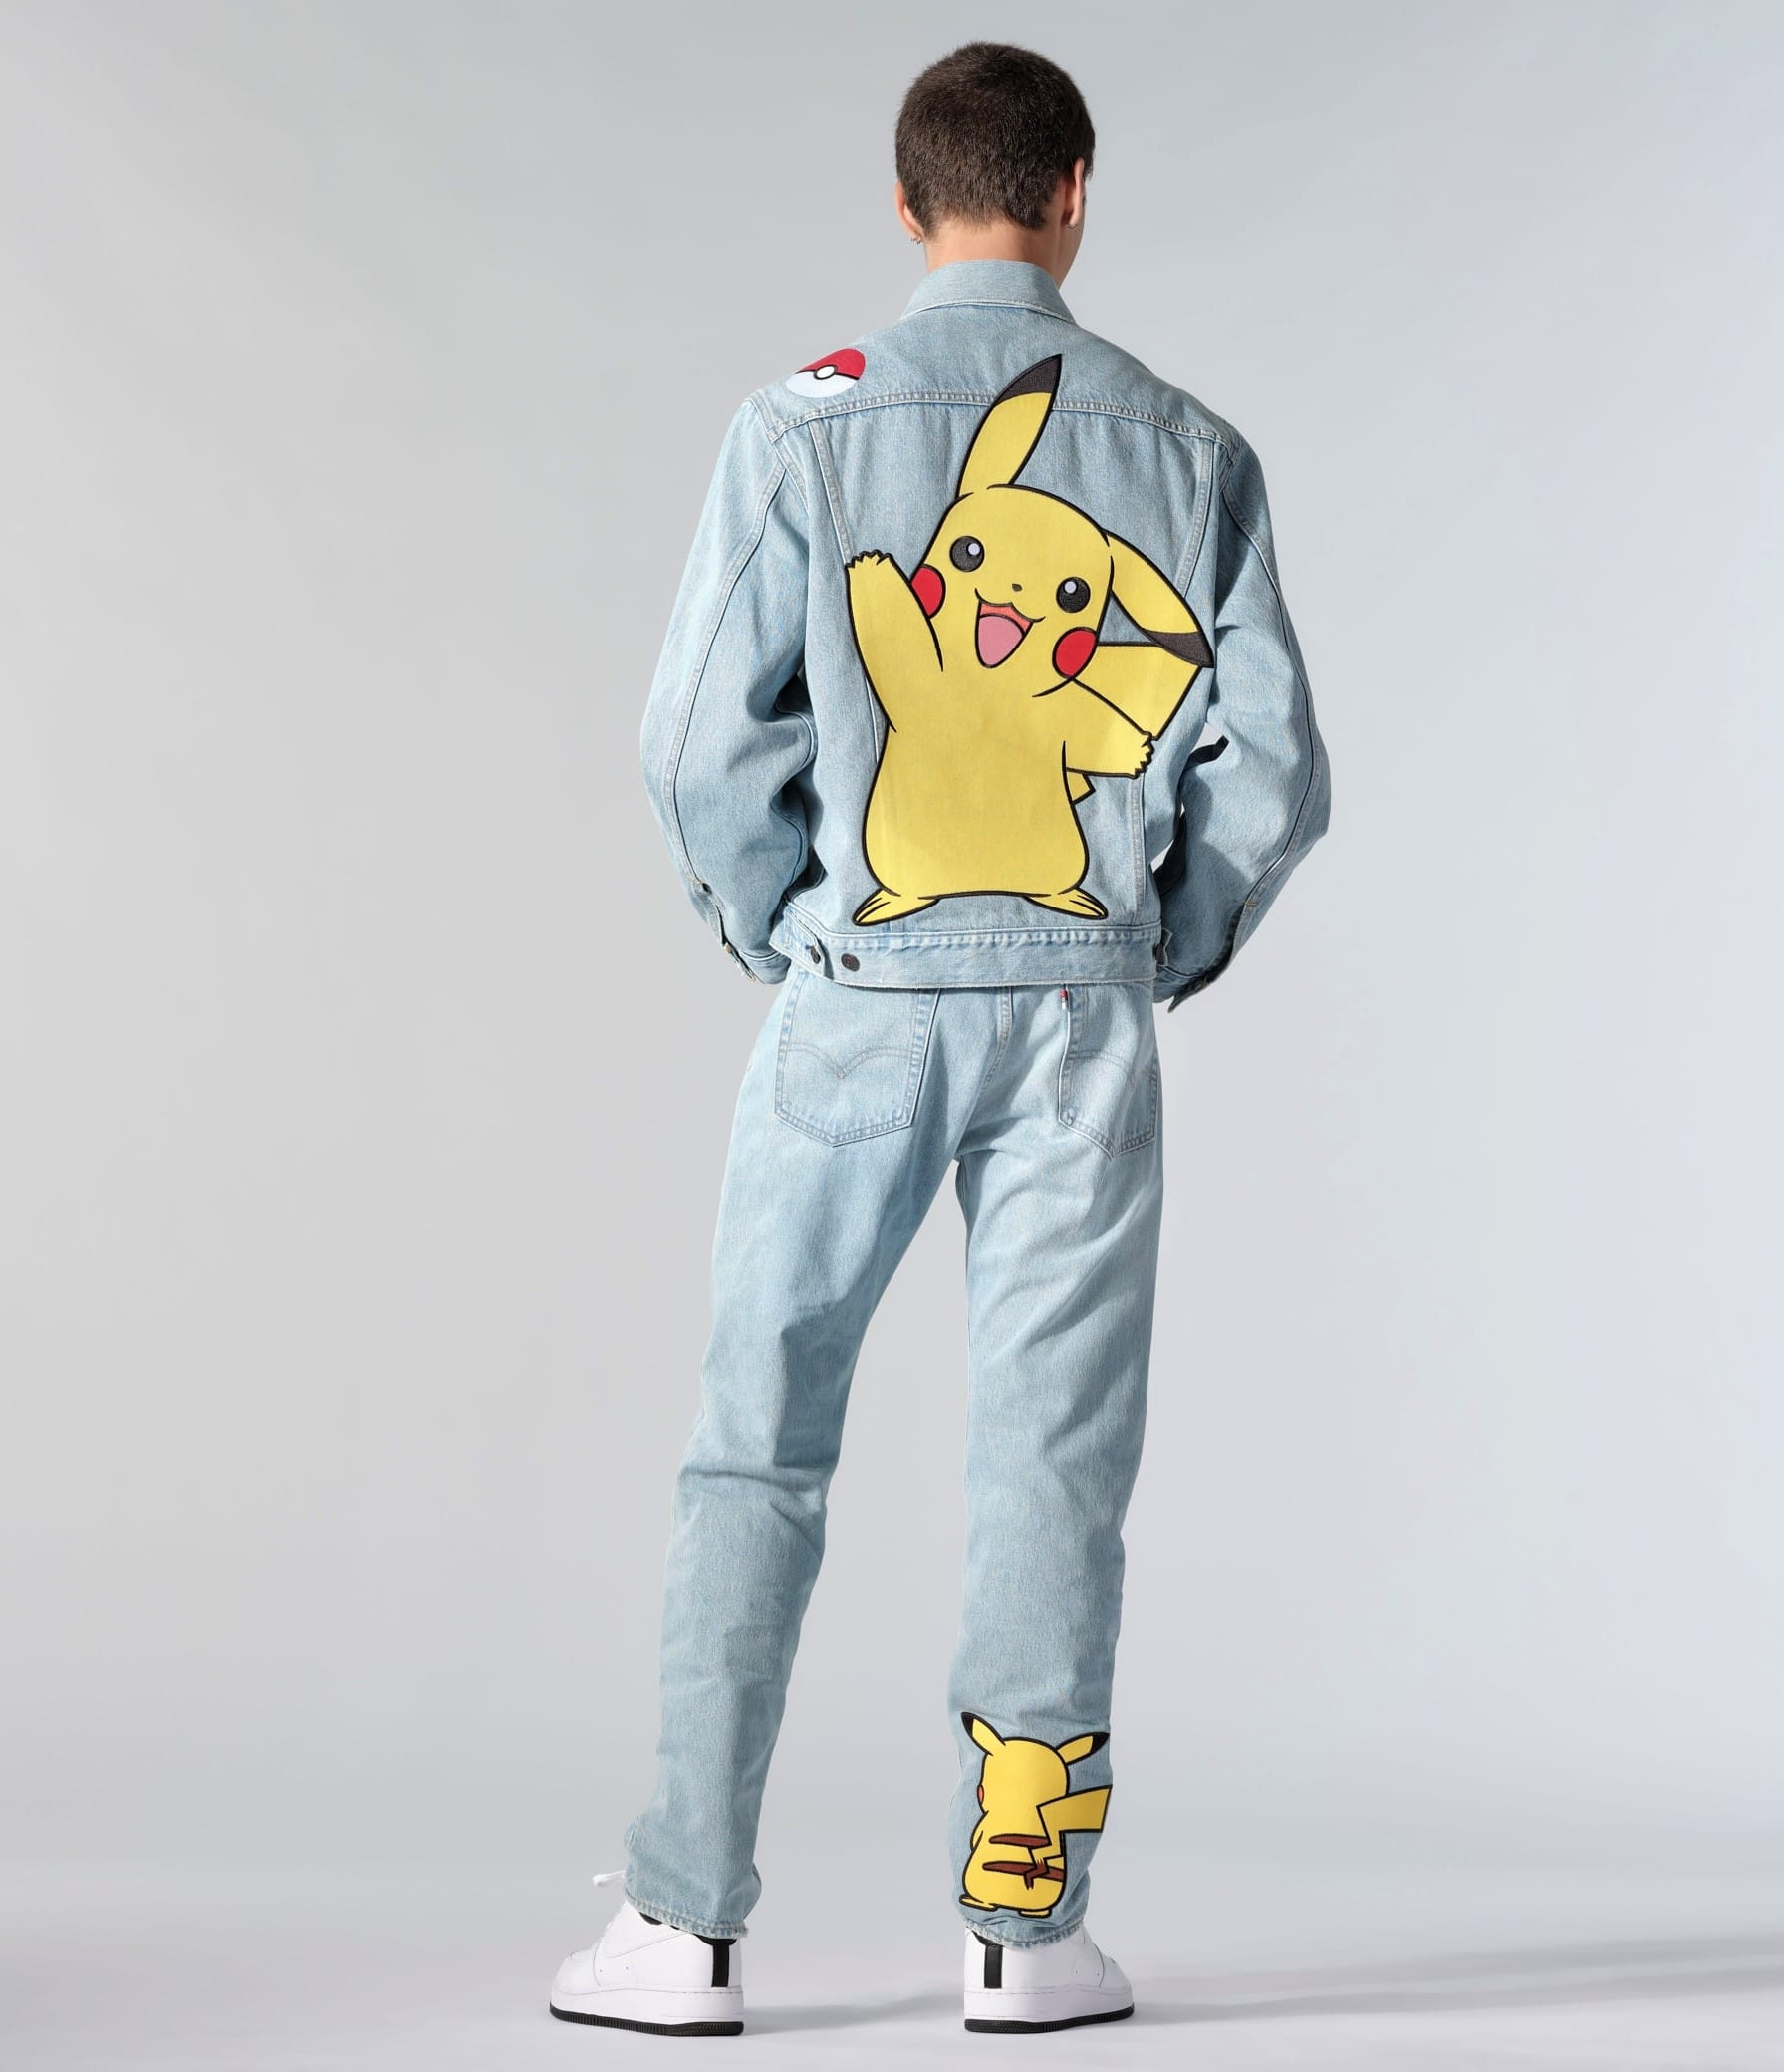 Levi's celebrates Pokémon's 25th anniversary with a '90s-style collection 15